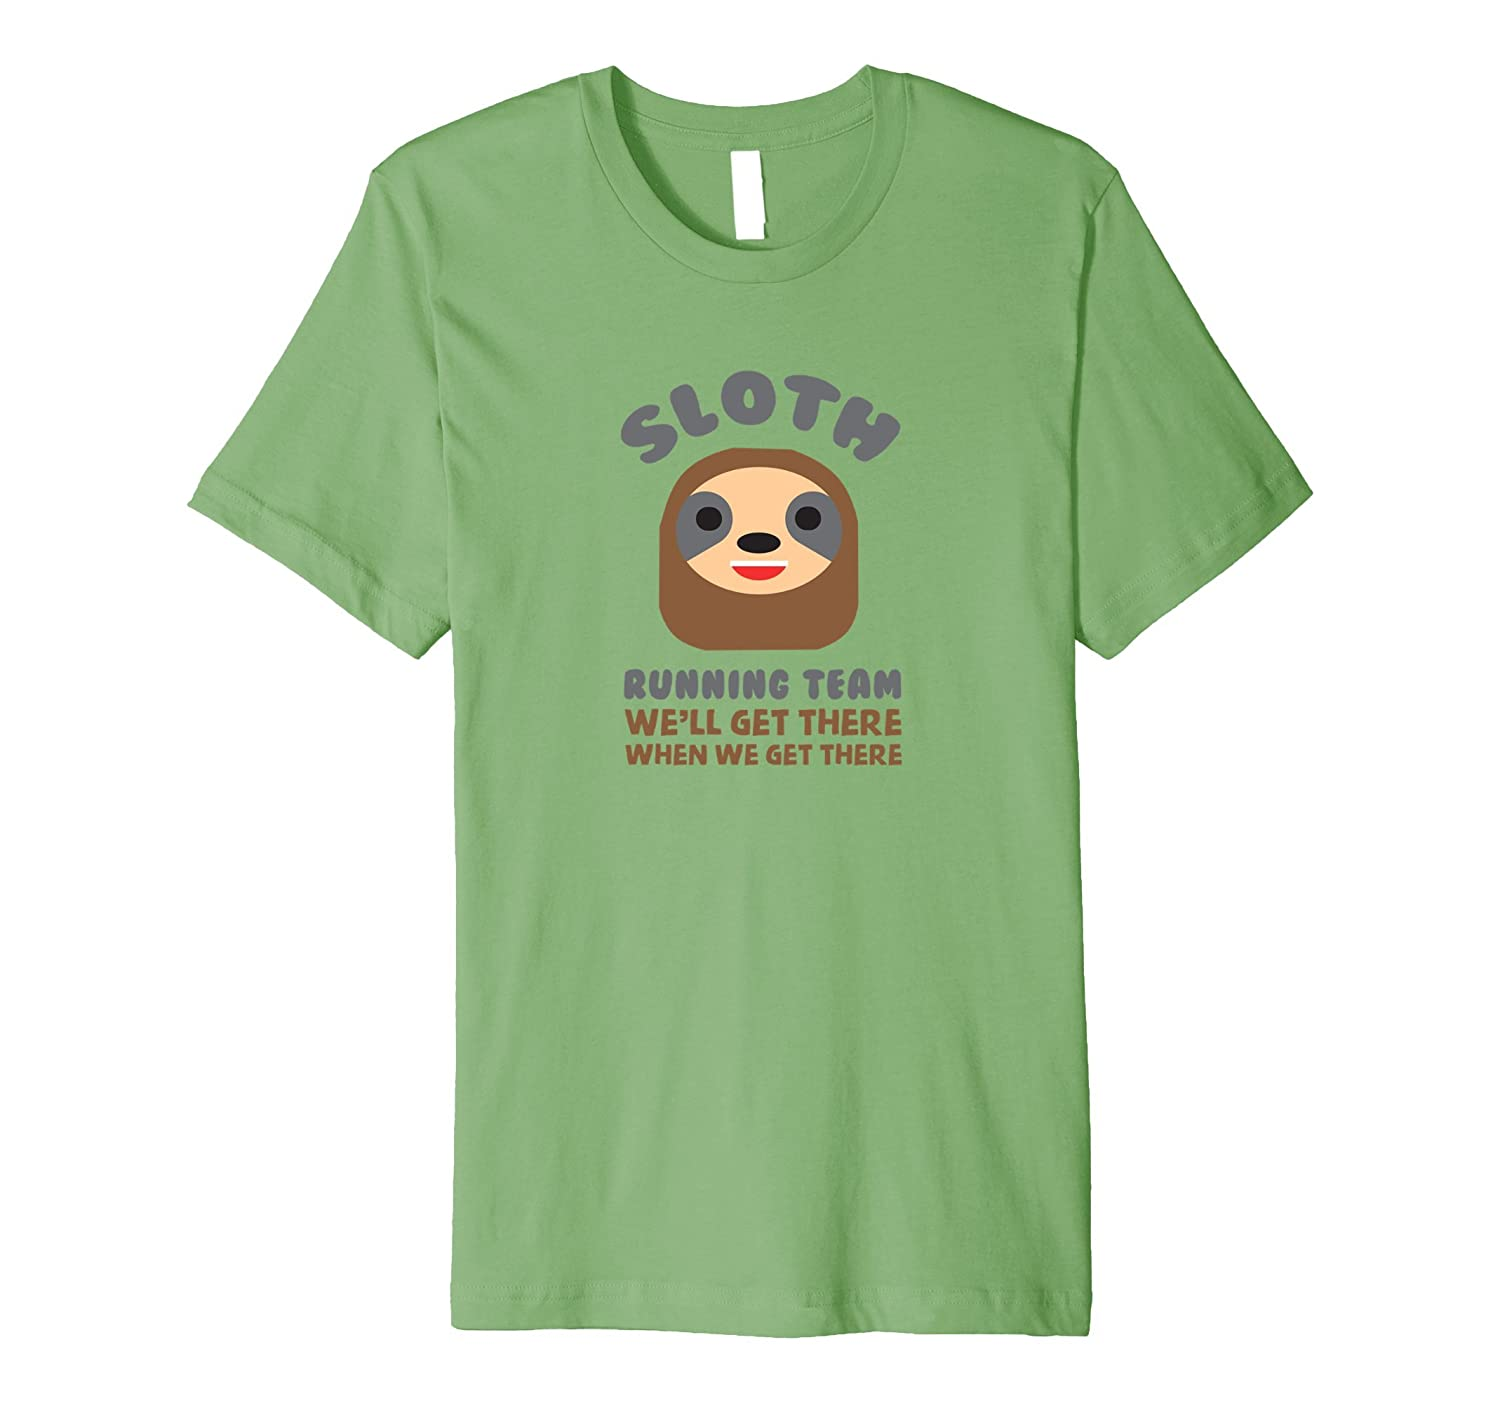 Sloth Running Team We'll Get There When We Get There T-Shirt-Teevkd